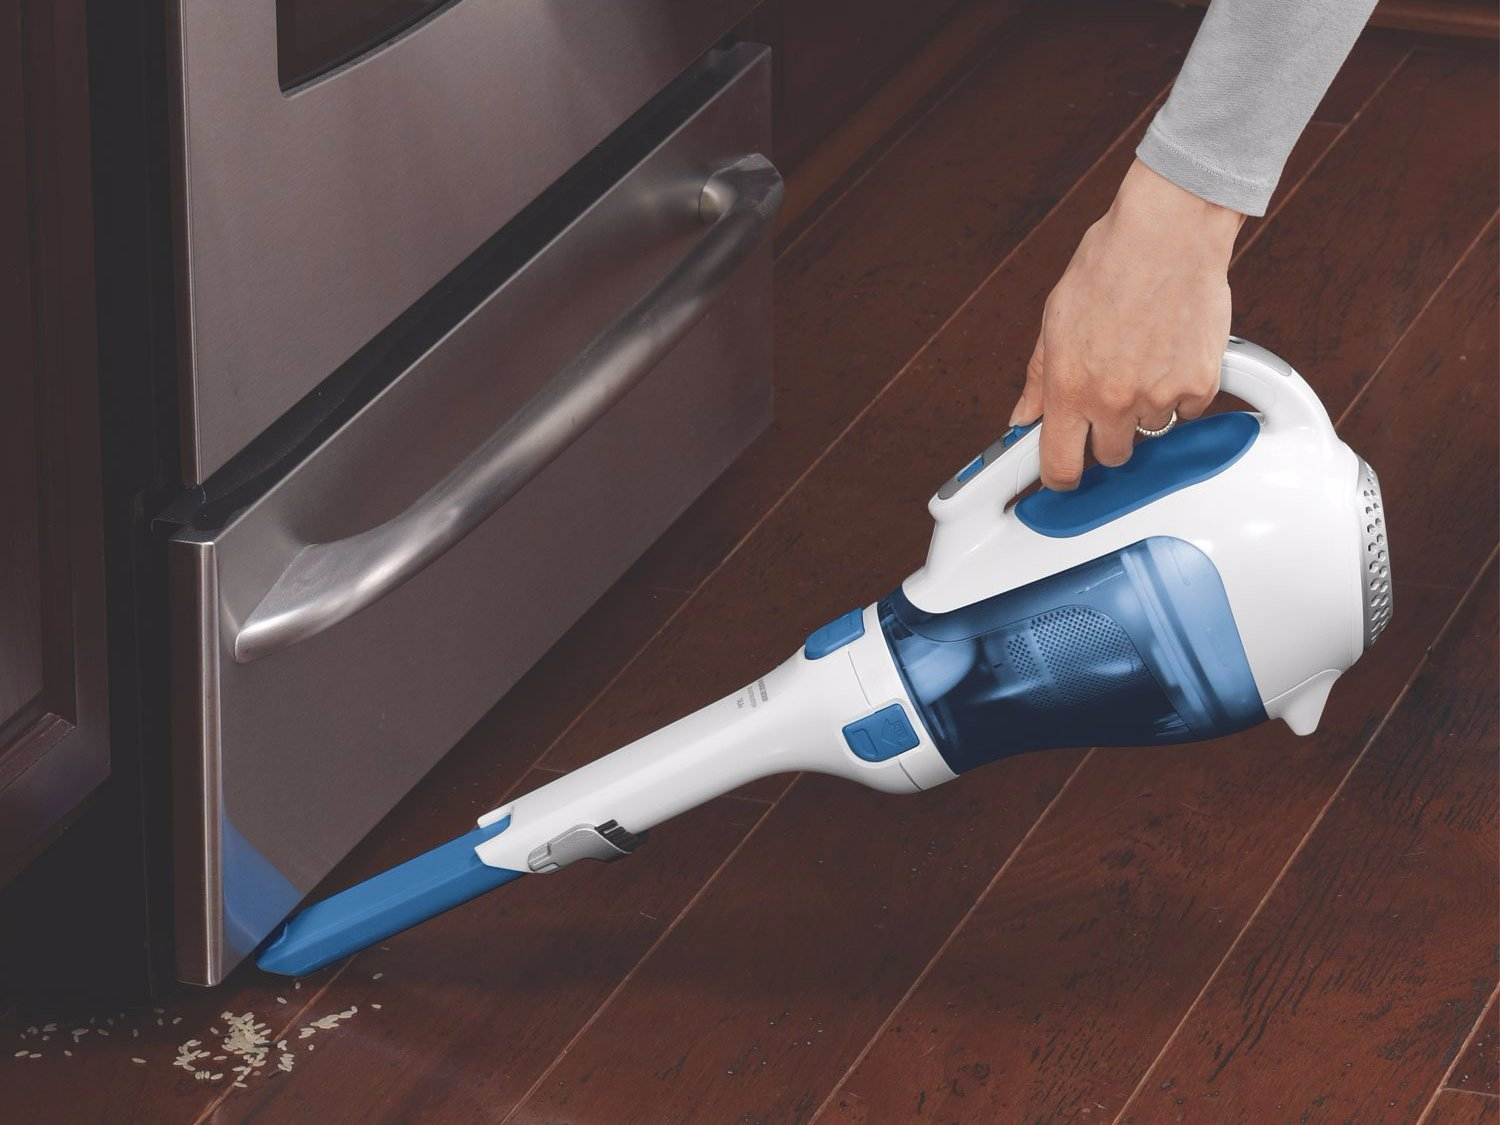 15 Best Handheld Vacuum Cleaners For Your Home Cars Pets